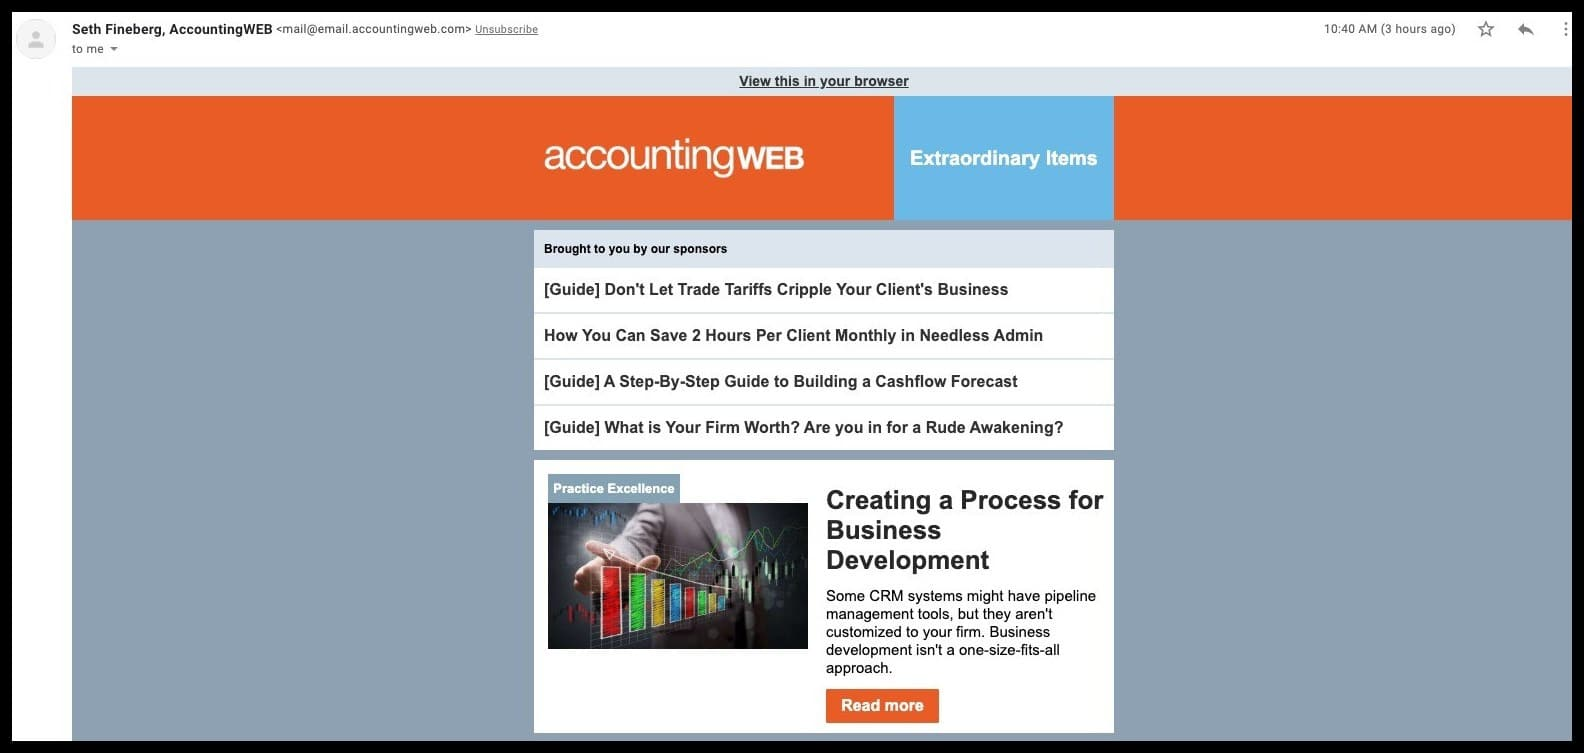 accountingweb newsletter